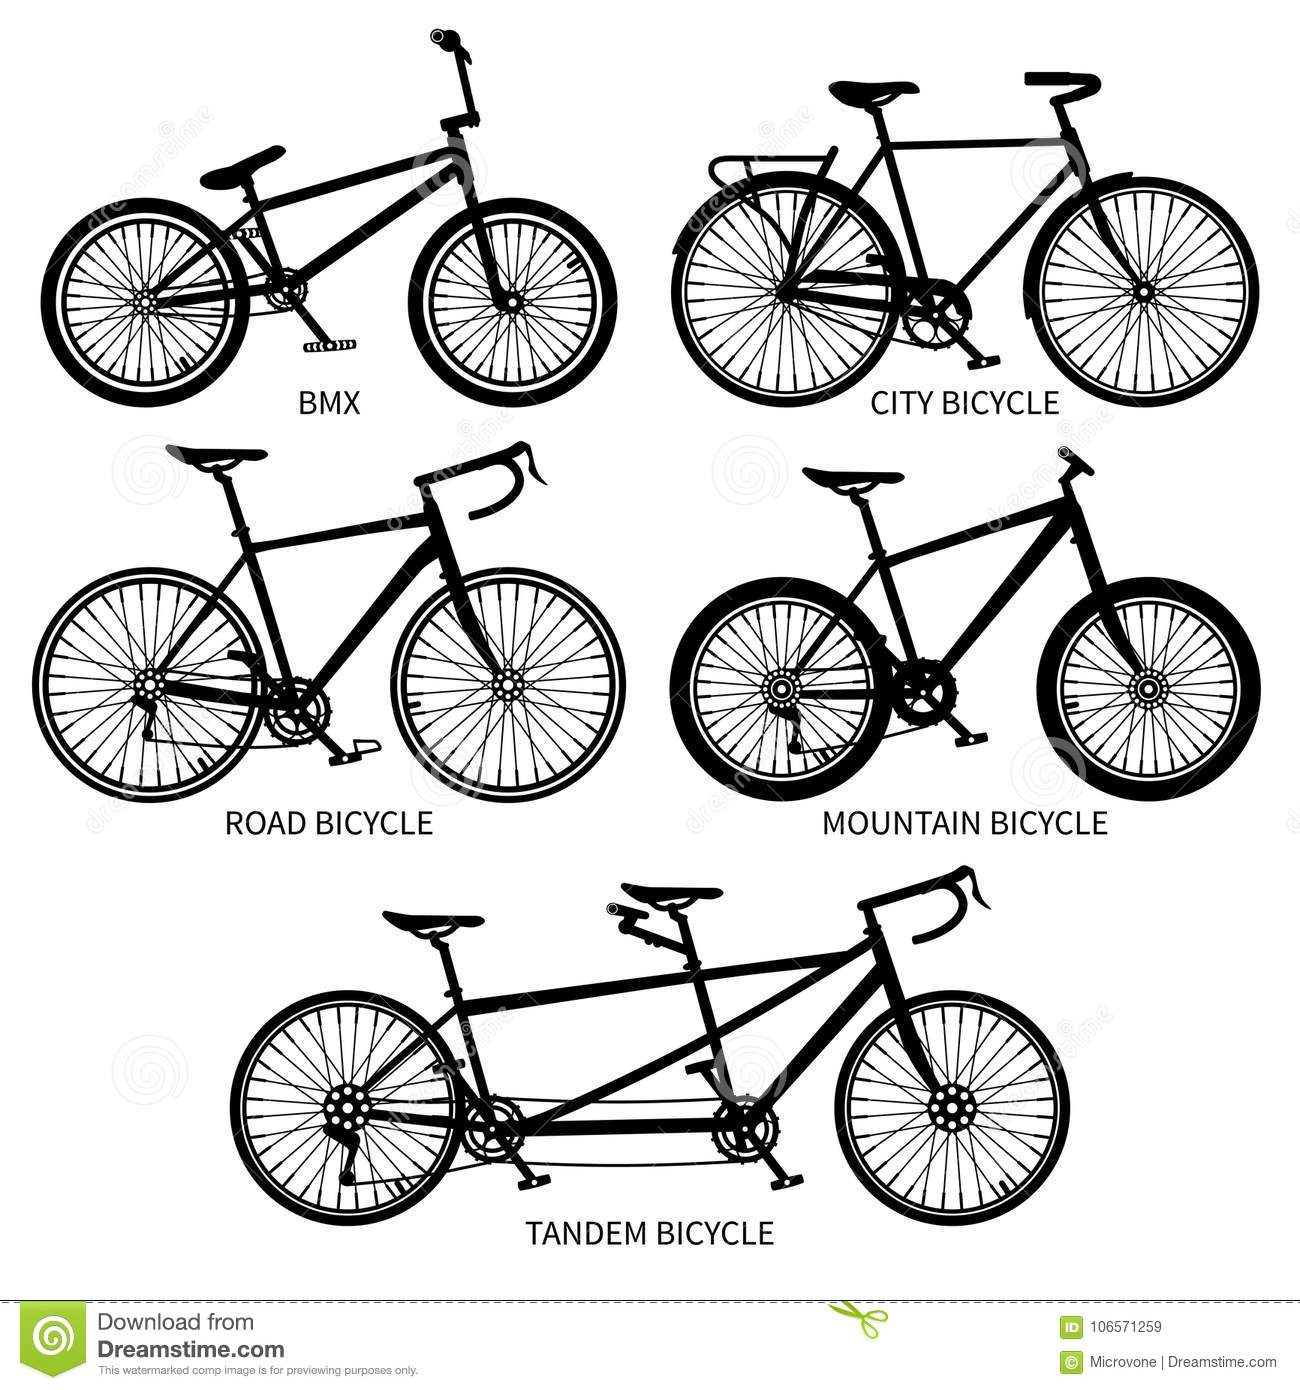 Types Of Bicycles >> Bike Types Vector Black Silhouettes Road Mountain Tandem Bicycles